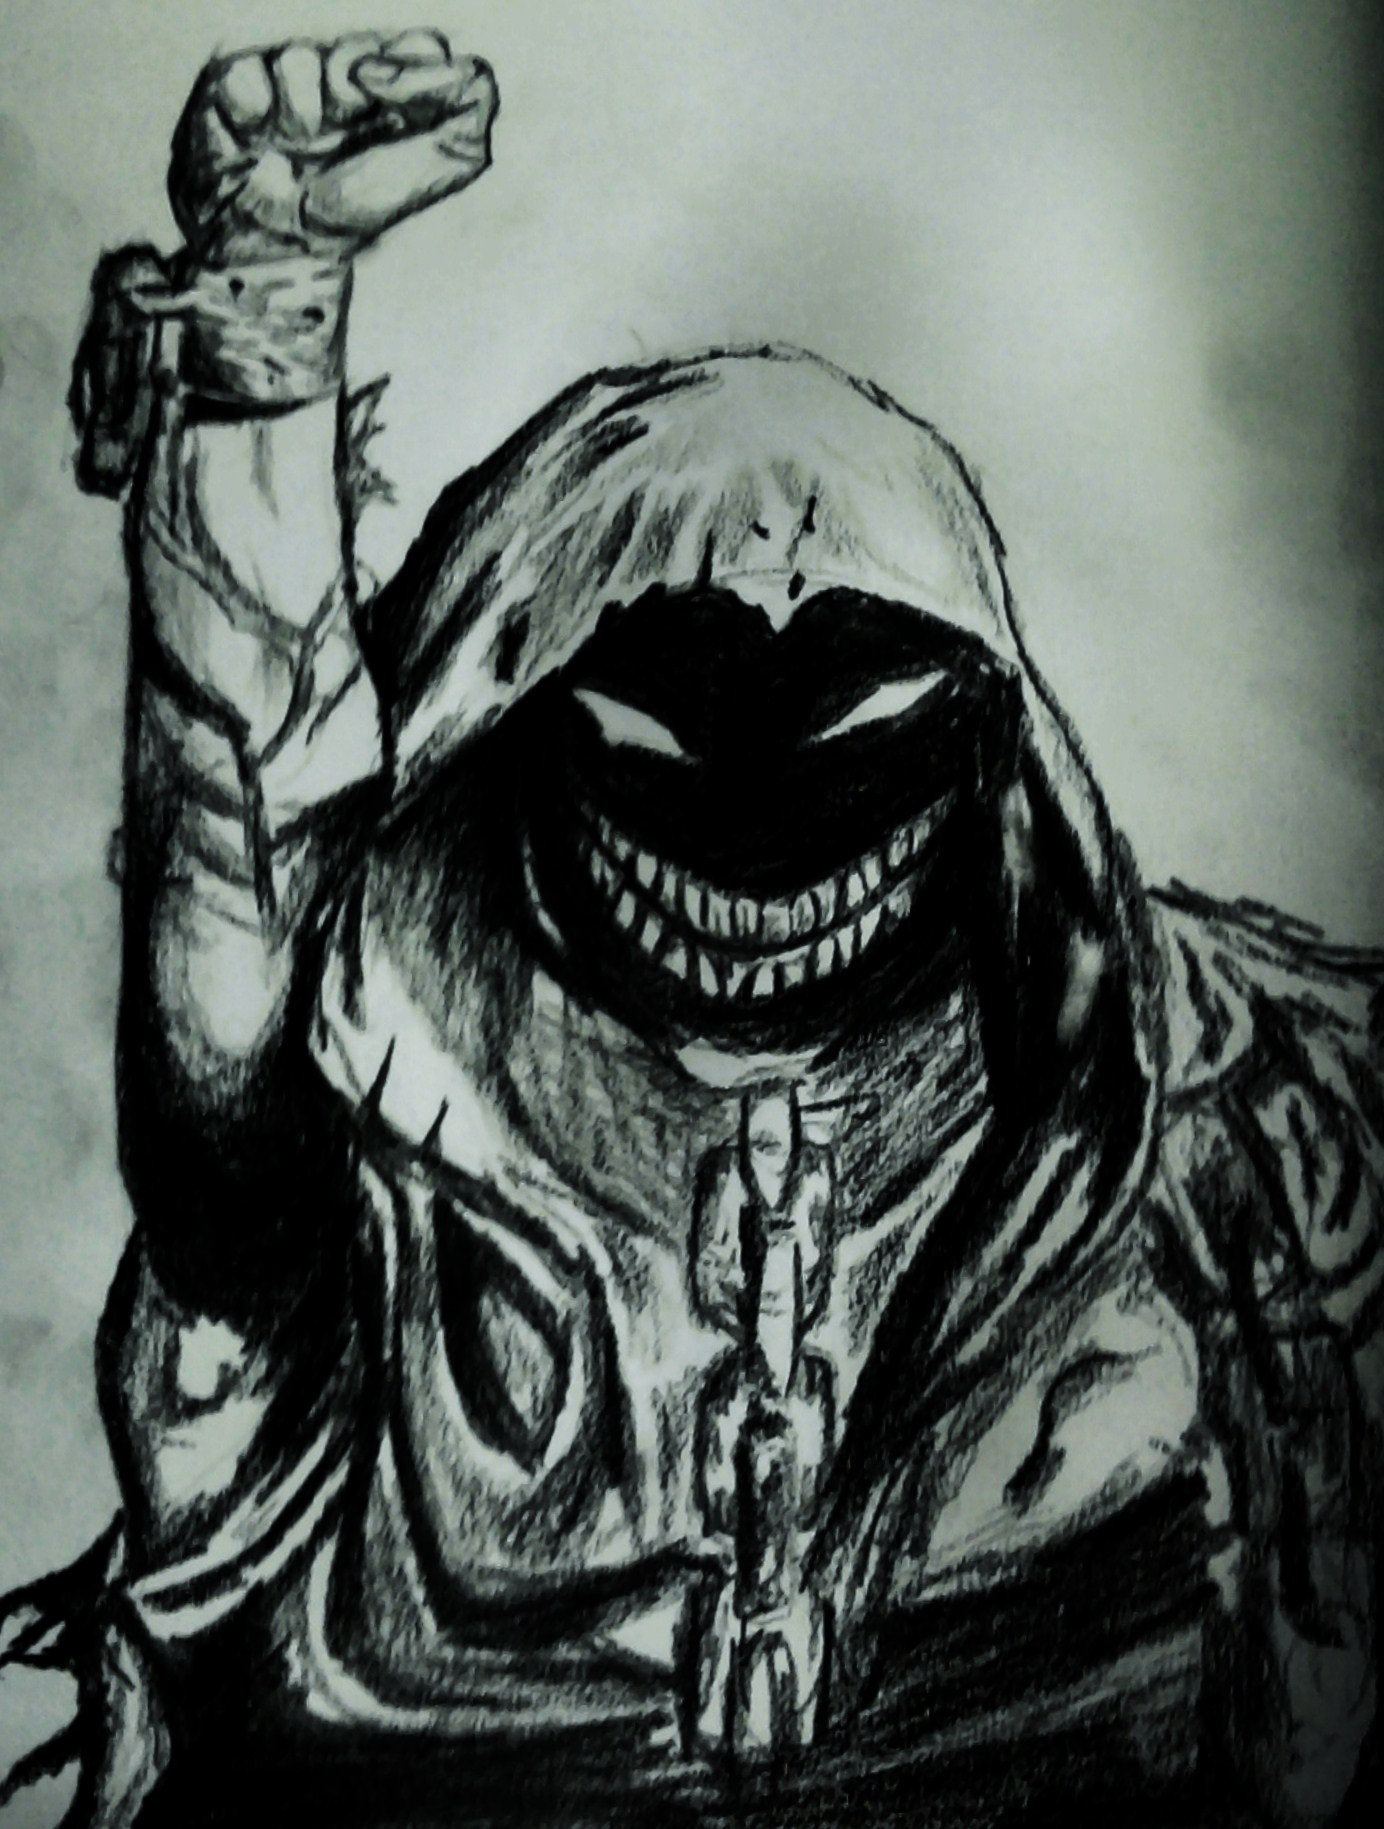 Disturbed, the guy